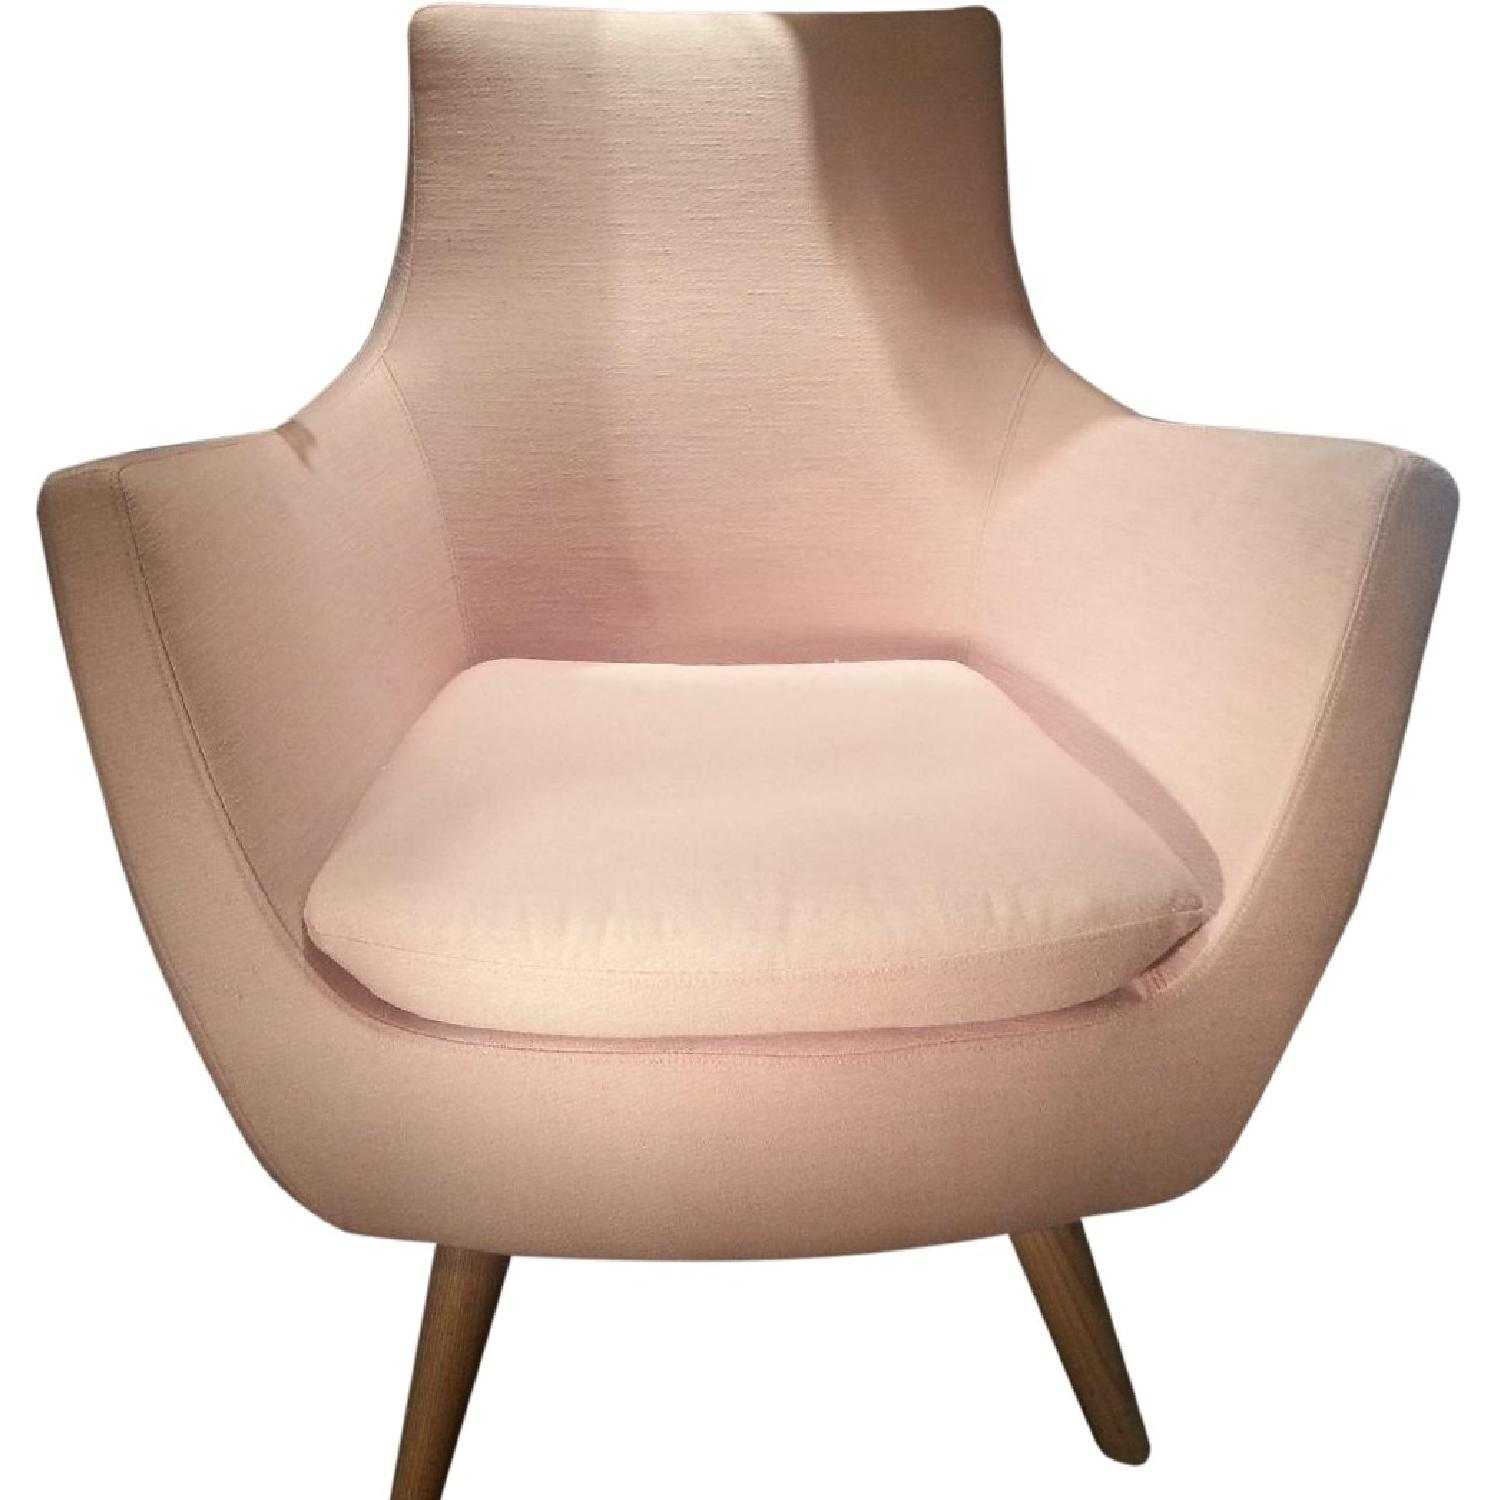 ABC Carpet & Home Pittsburg Pink Armchair - image-0